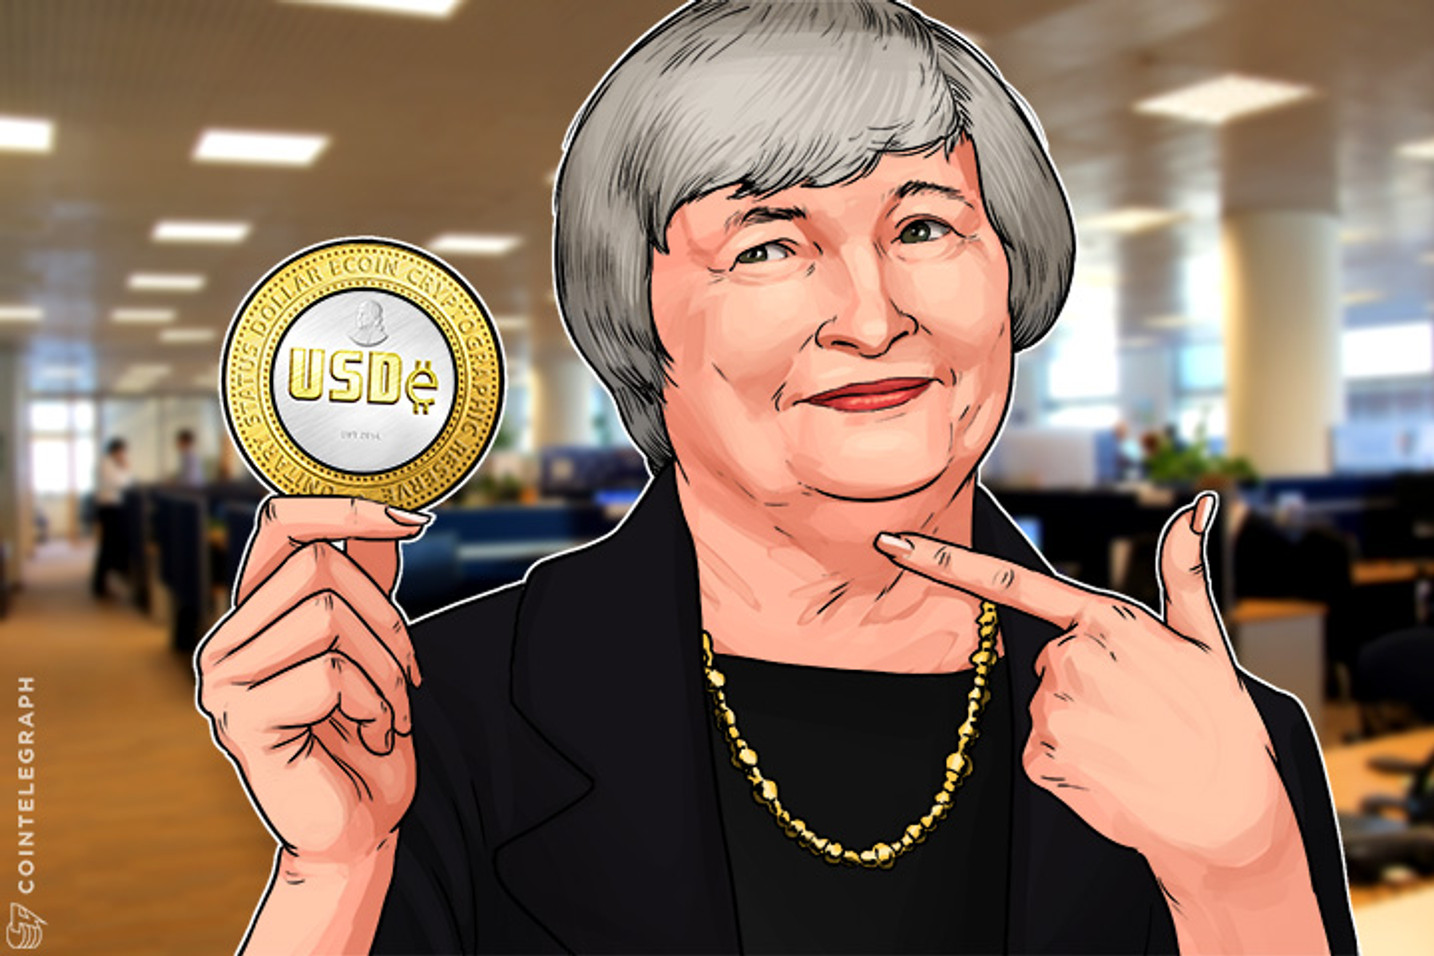 U.S. Federal Reserve Explores The Potential of Blockchain, Lacks Vision